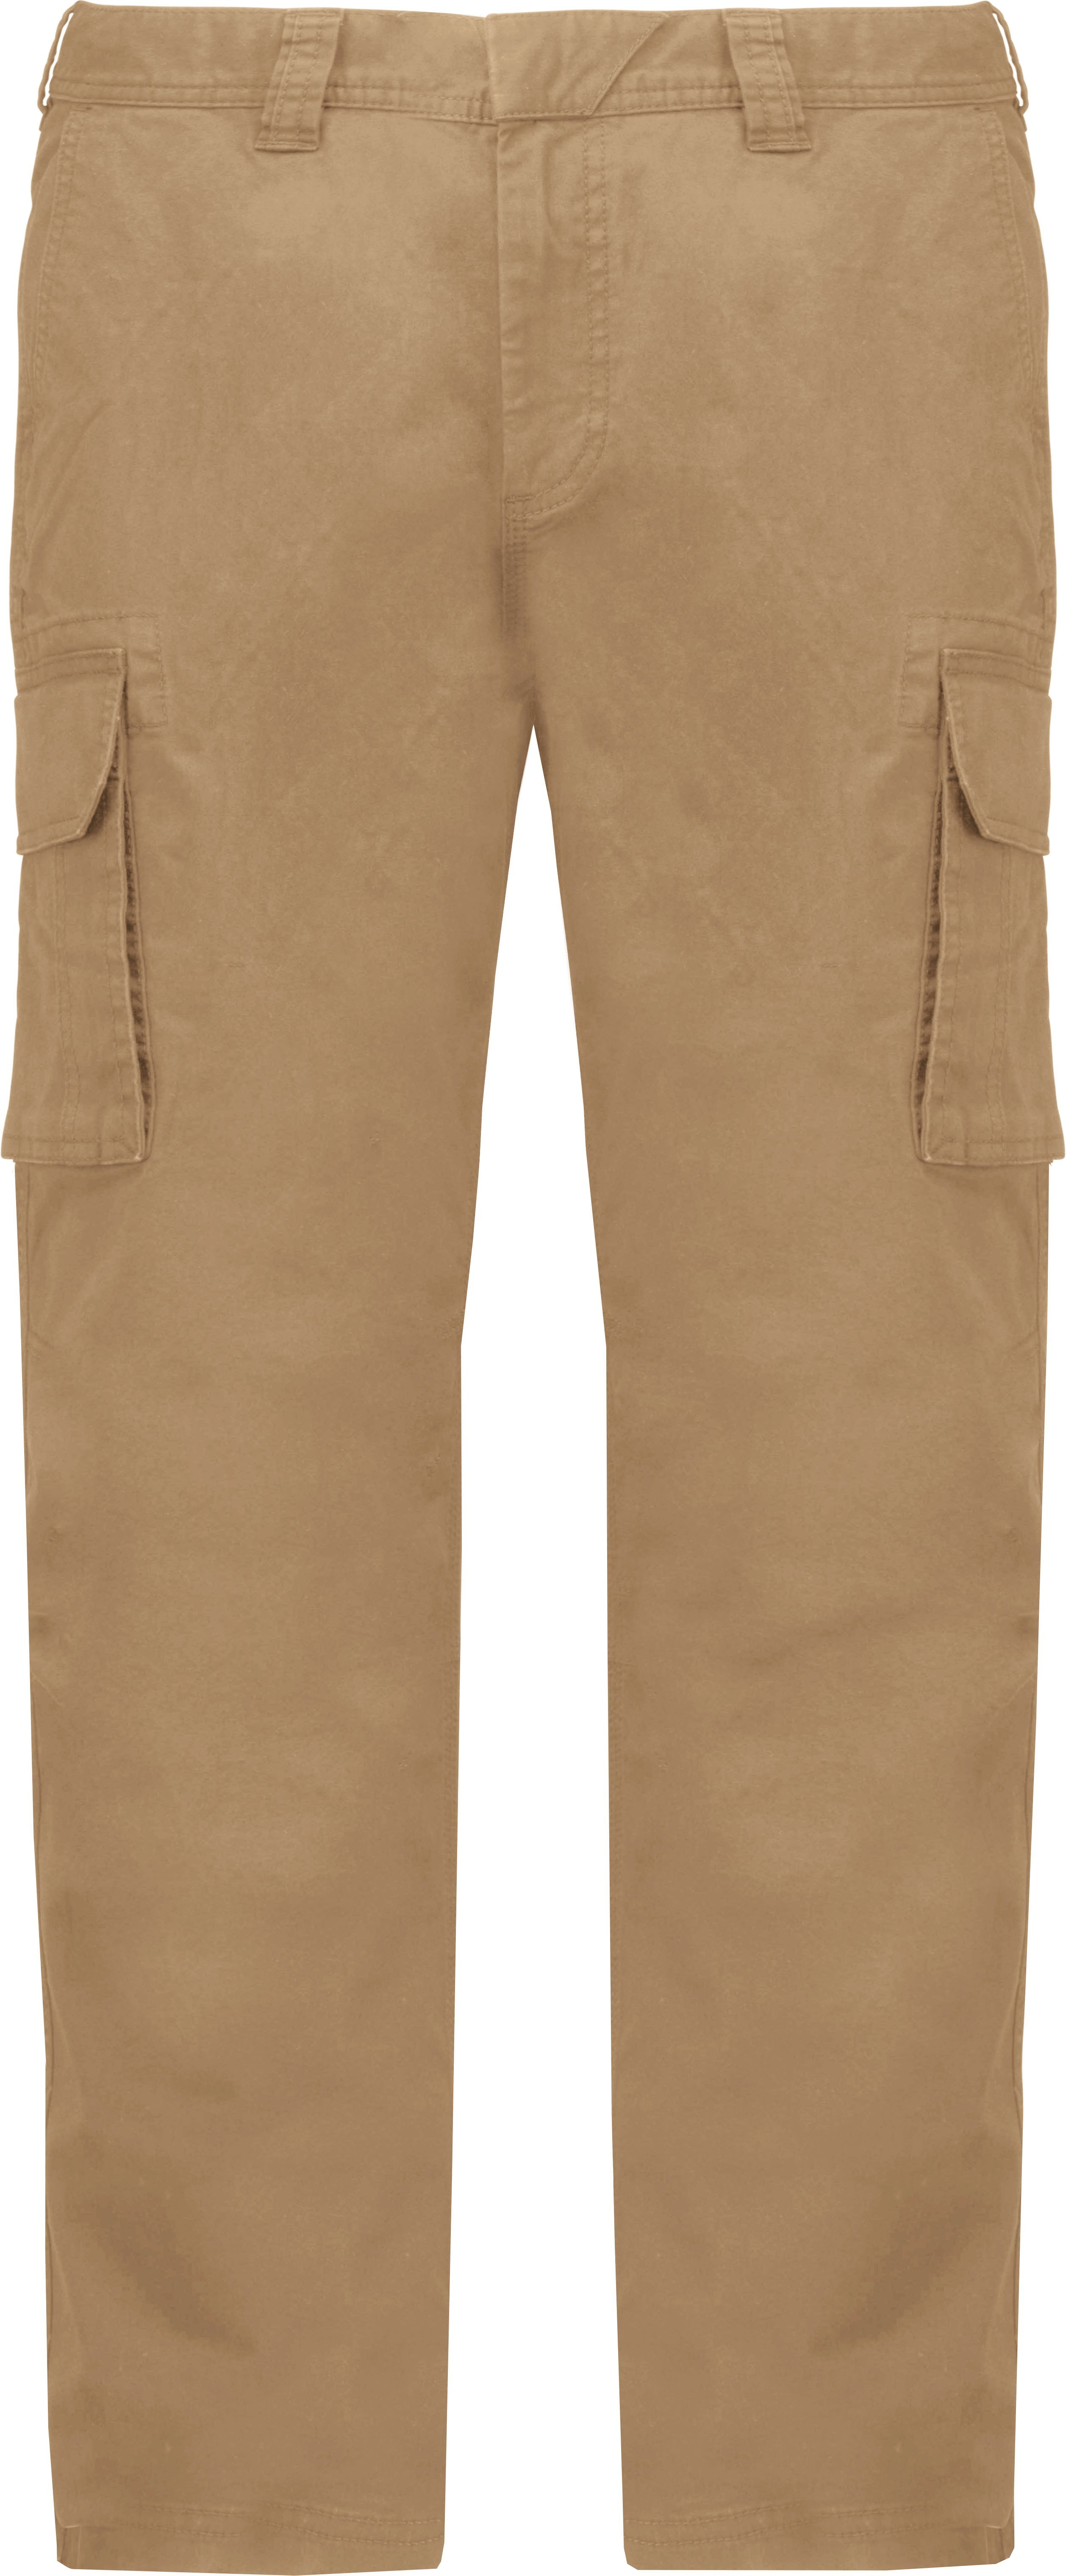 Pantalon multipoches homme - 2-1573-4